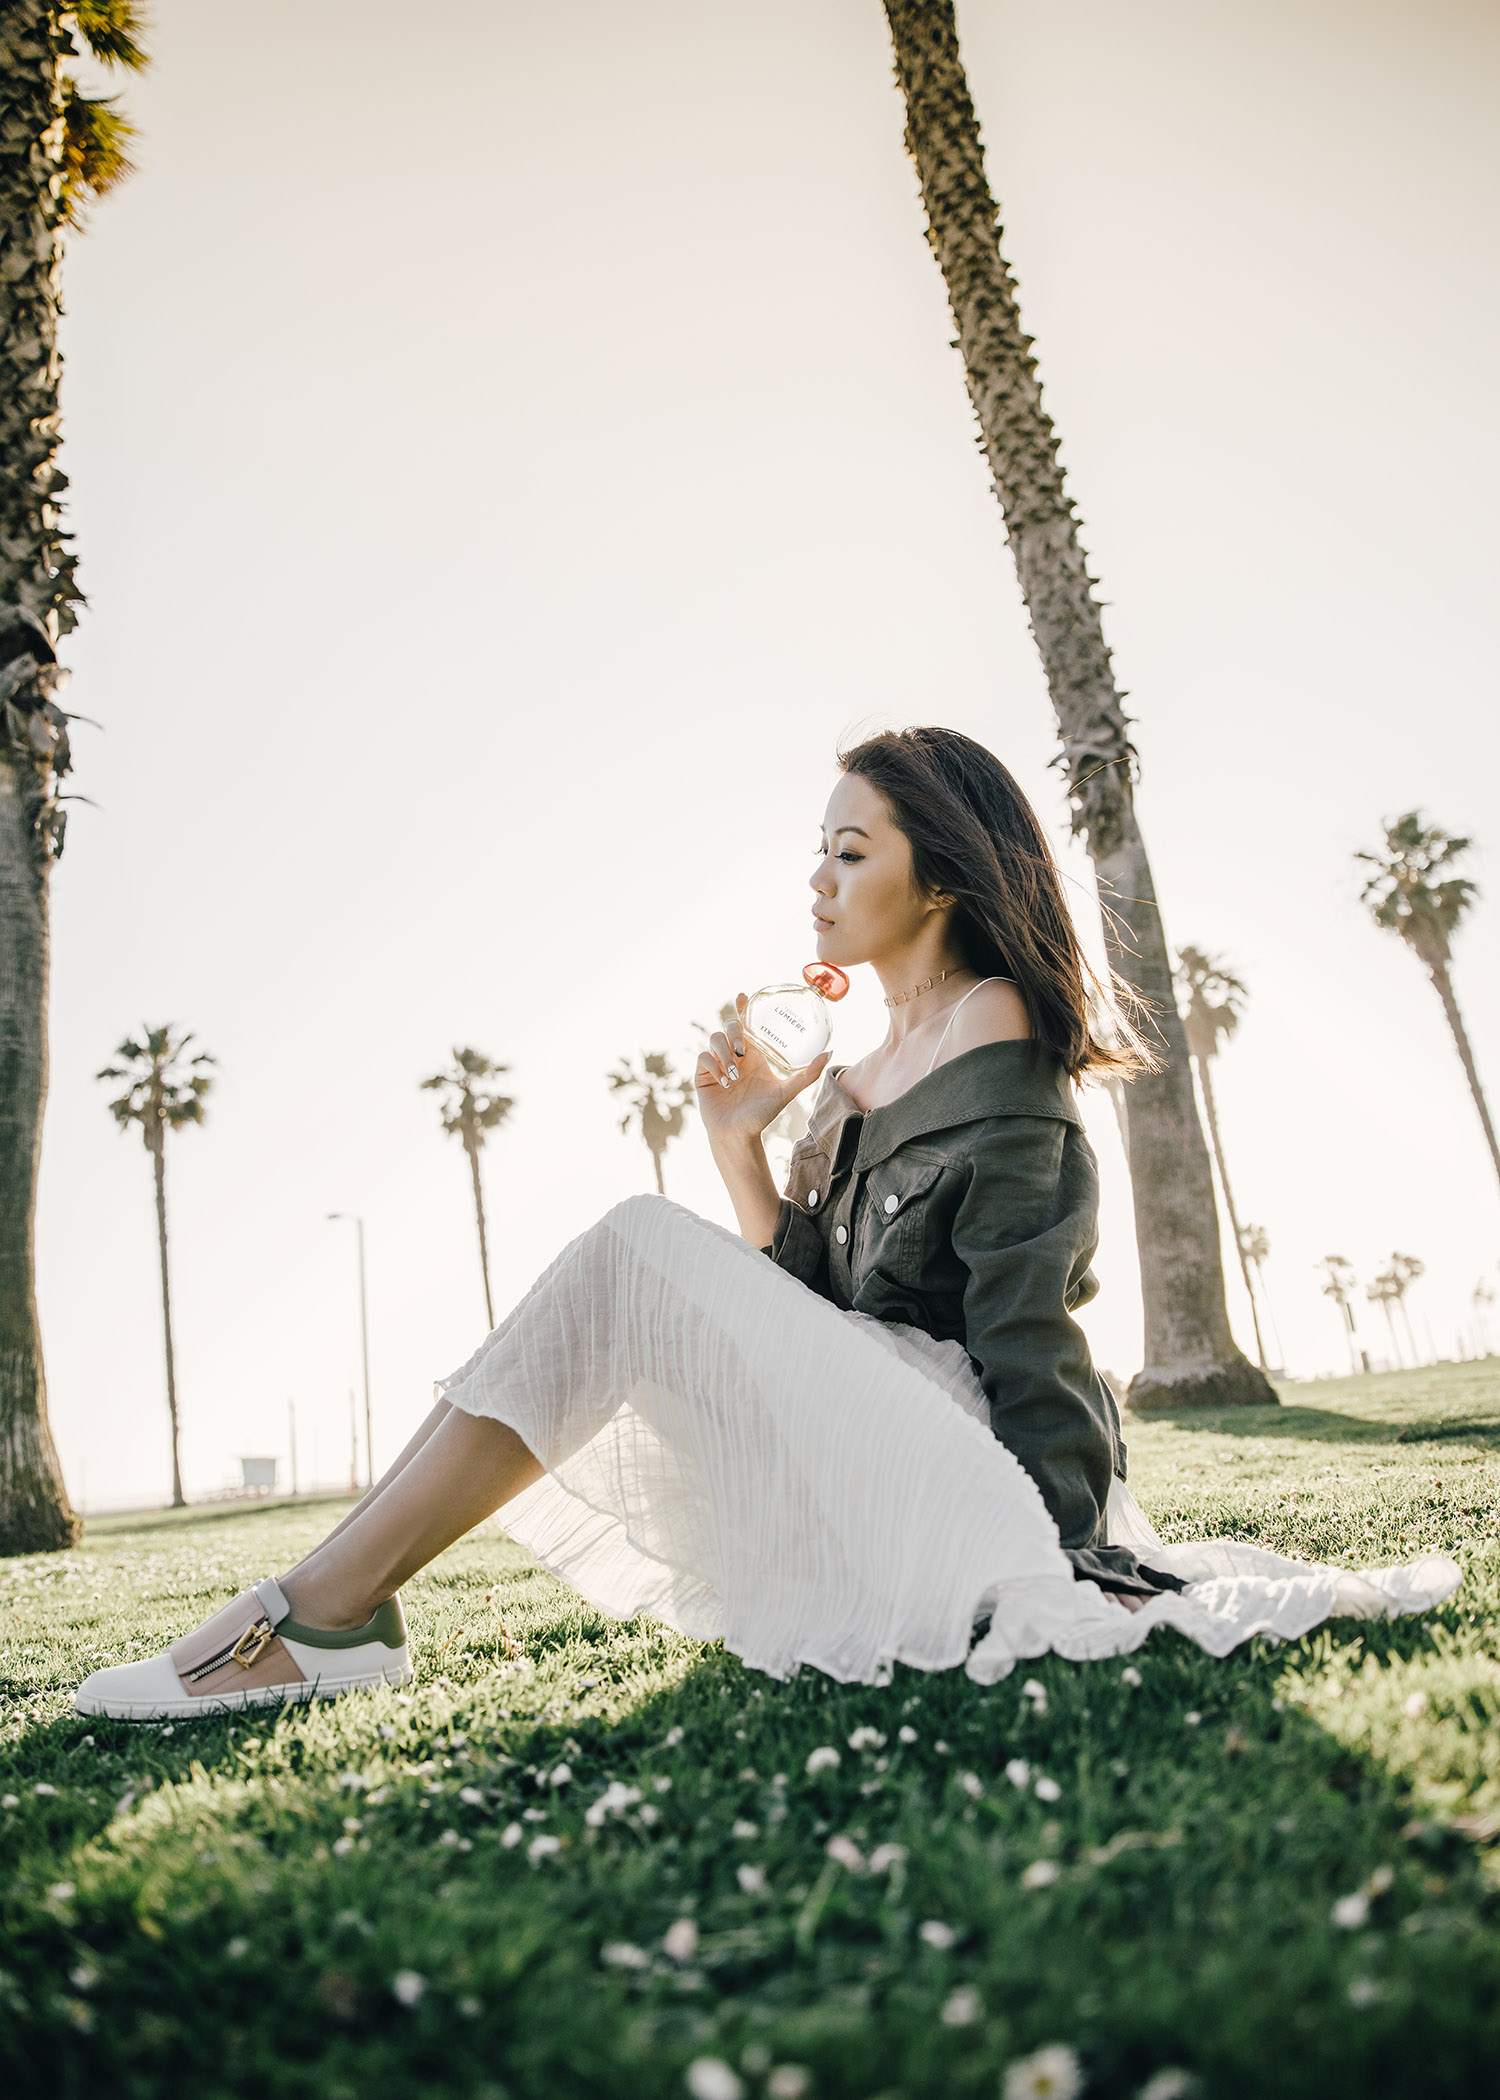 Street style fashion blogger influencer Jenny Tsang of Tsangtastic wearing ROBERT RODRIGUEZ Off Shoulder Jacket, C/MEO COLLECTIVE White Evoke Dress, L'Occitane en Provence Terre de Lumiere and ROGER VIVIER Sneaky Viv, in Los Angeles, Venice, California.